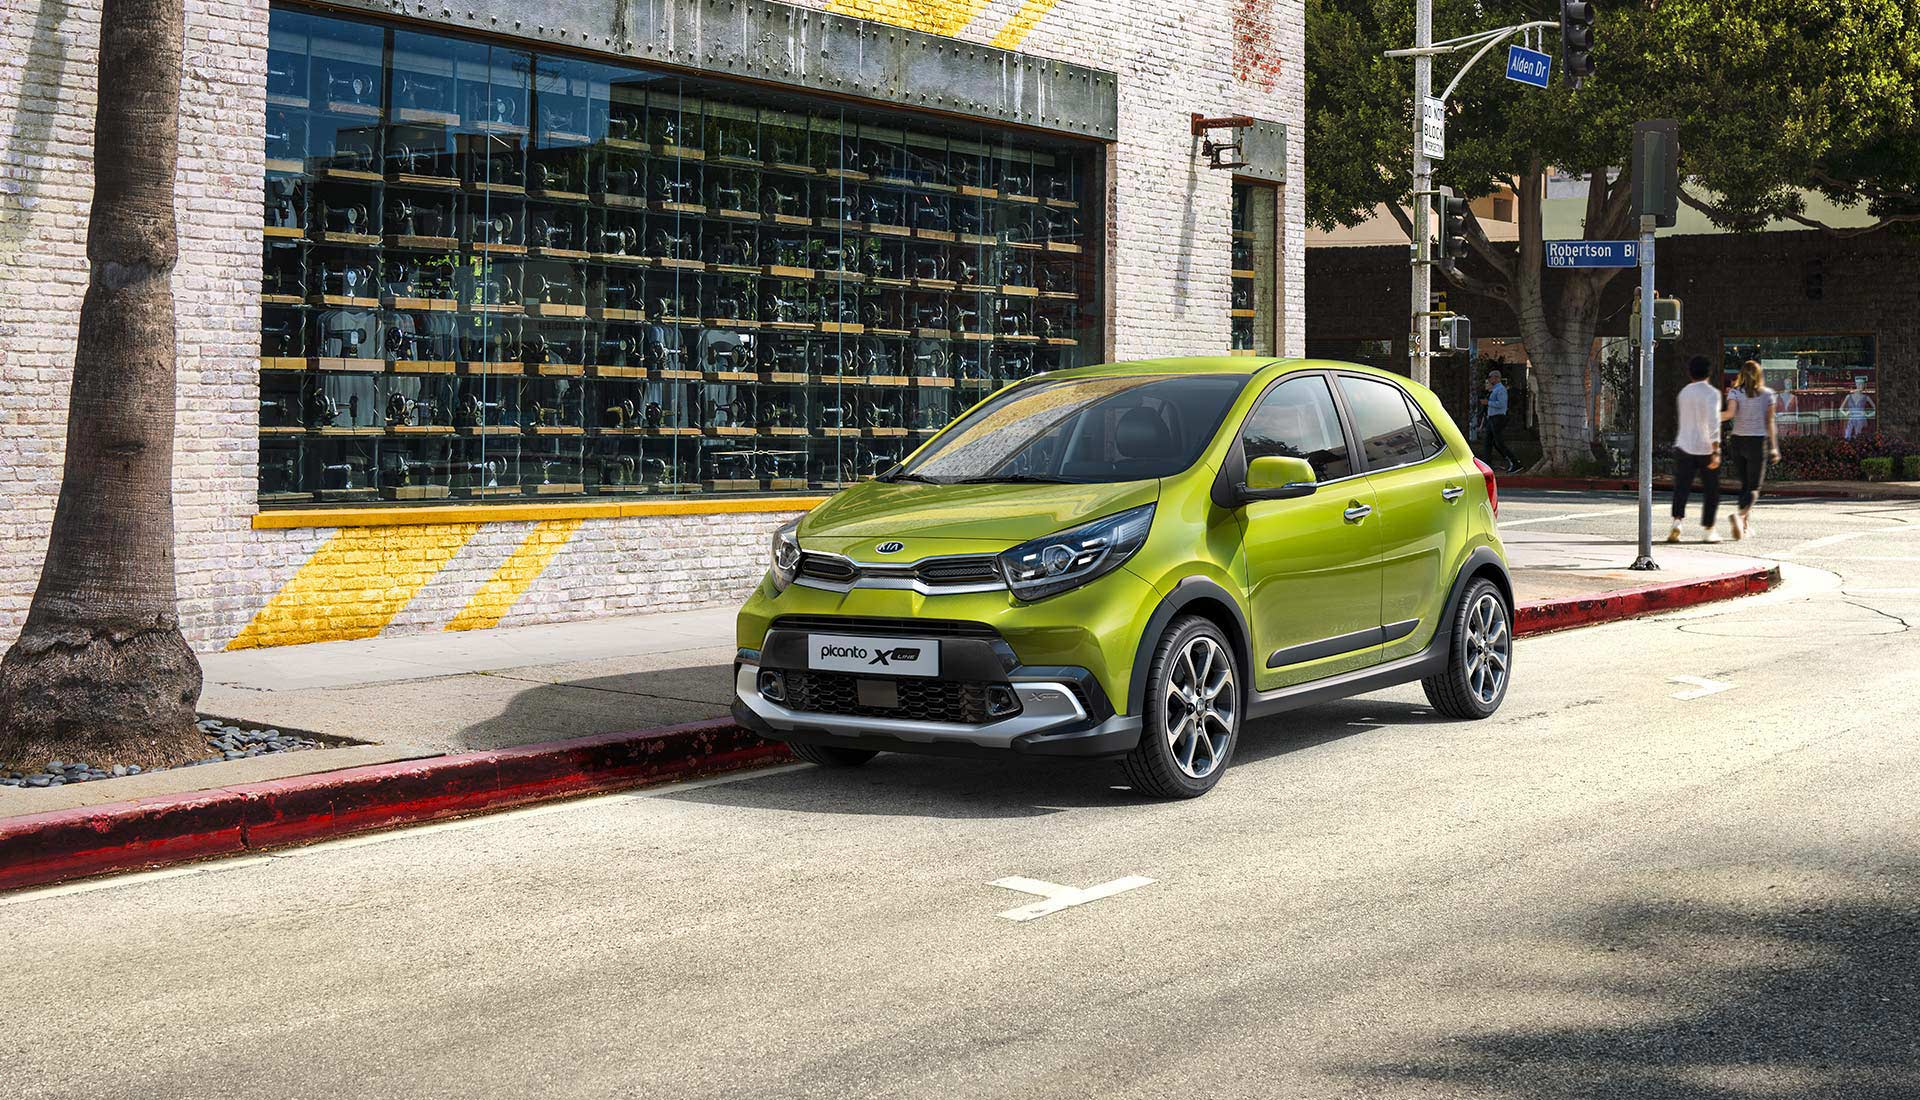 The new Kia Picanto X-Line exterior